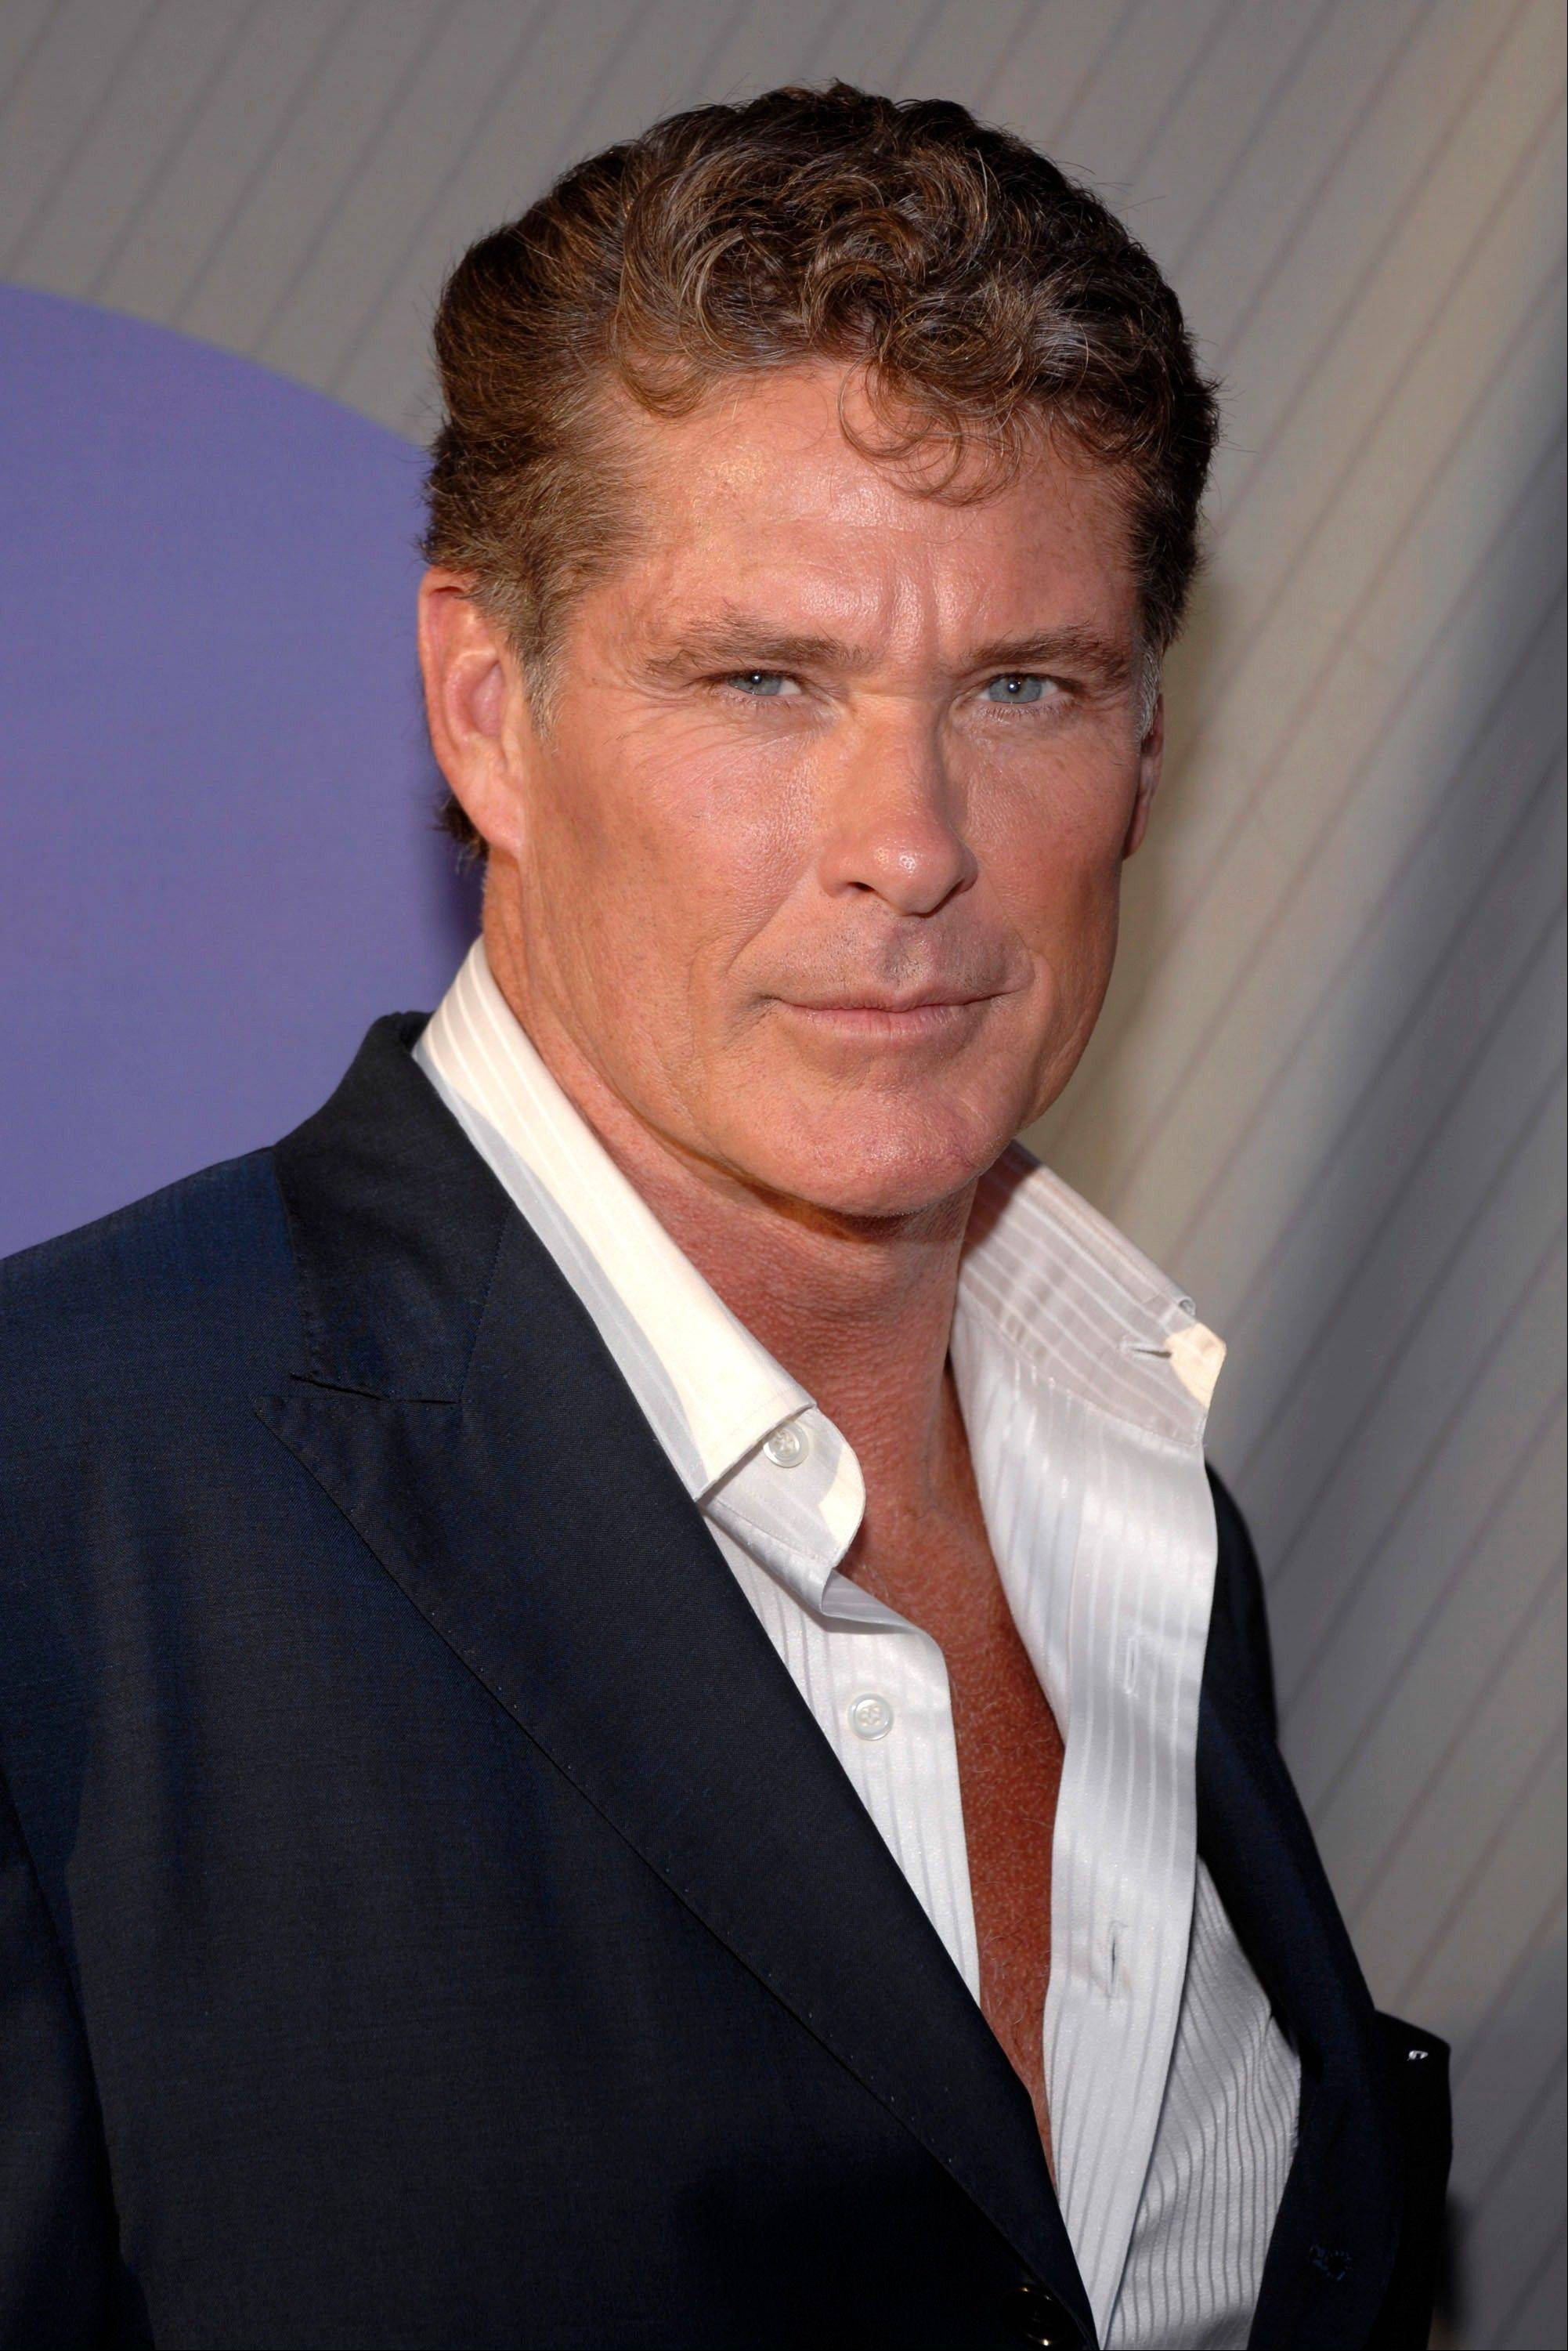 In this July 2007 file photo, actor David Hasselhoff attends the NBC All-Star Party in Beverly Hills, Calif. Hasselhoff flashes a dreamy smile and displays a lean tank top-clad torso in giant photo cutouts that his fans apparently can't leave alone. About 550 of the cutouts of Hasselhoff were stolen from outside Cumberland Farms convenience stores in recent weeks. Cumberland brand strategy specialist Kate Ngo says only about 20 remain for the roughly 570 stores in New England and Florida.